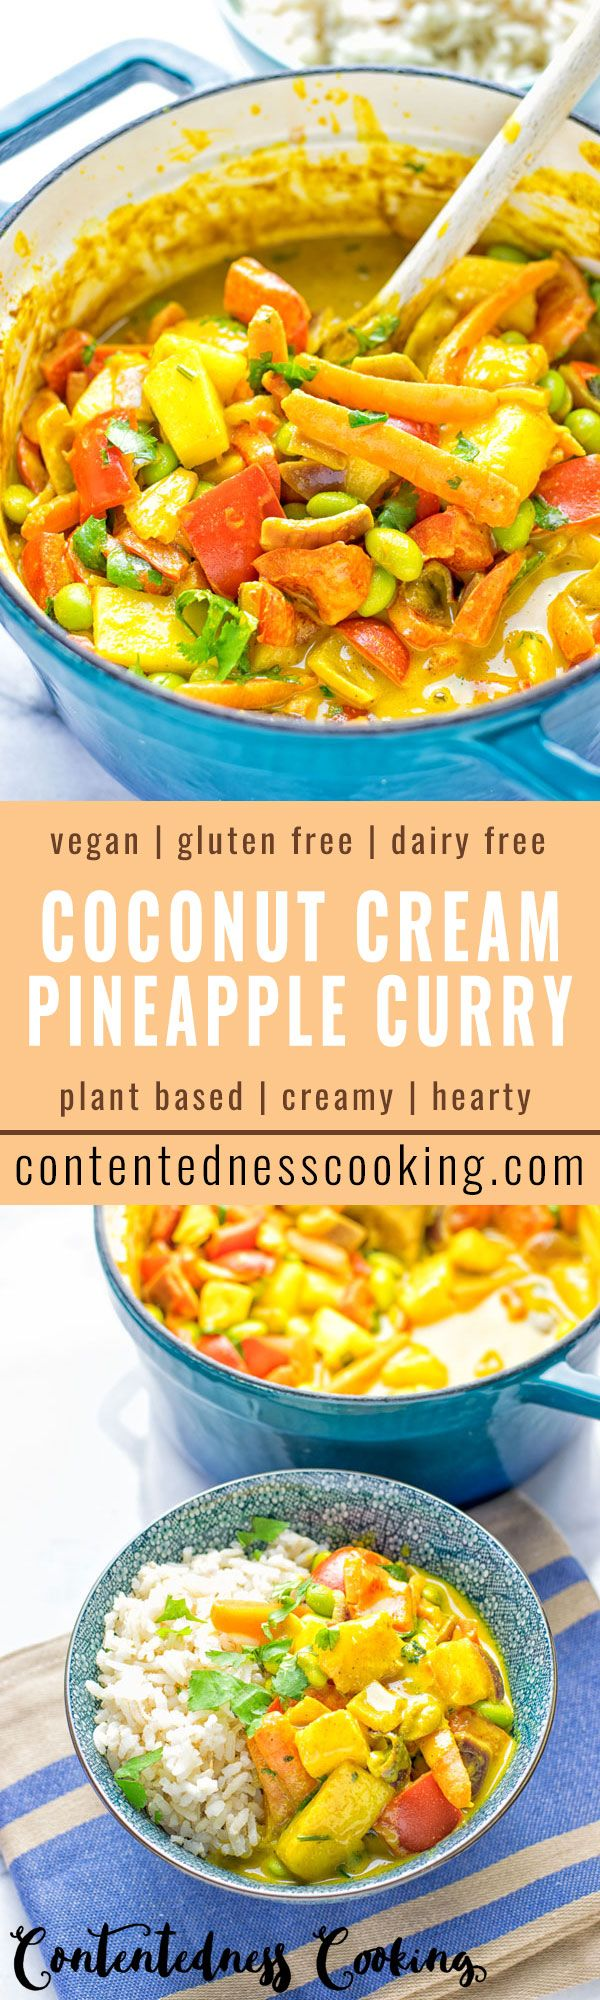 A delicious and super easy Coconut Cream Pineapple Curry. Versatile and full of fantastic flavors. Entirely vegan, gluten free and you can make your favorite version by adding optional extras in.